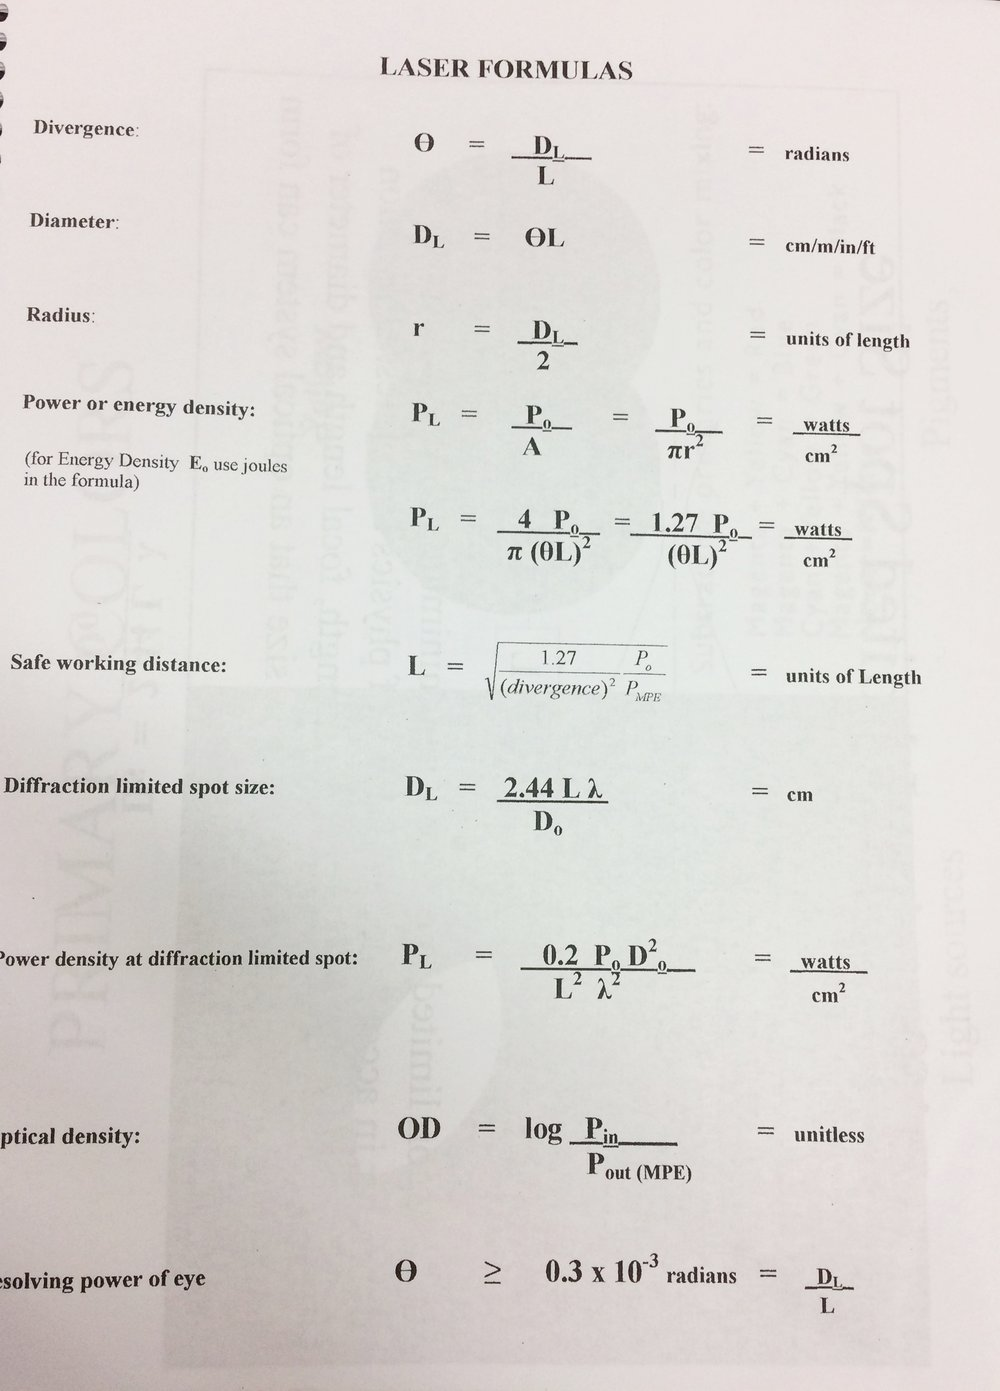 formulas used for laser certification test.